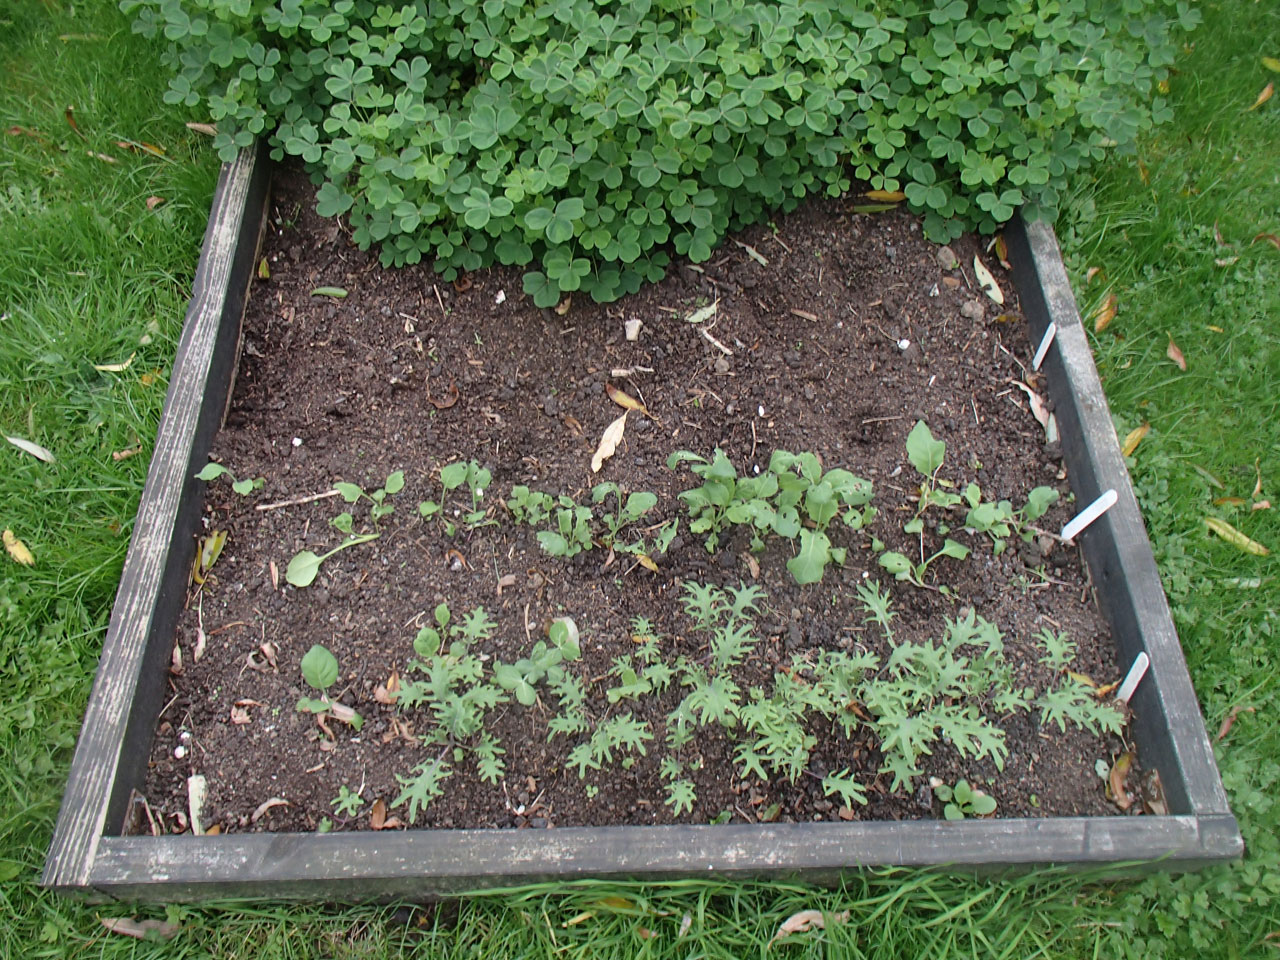 chinese kale and Rouge de Russie seedlings